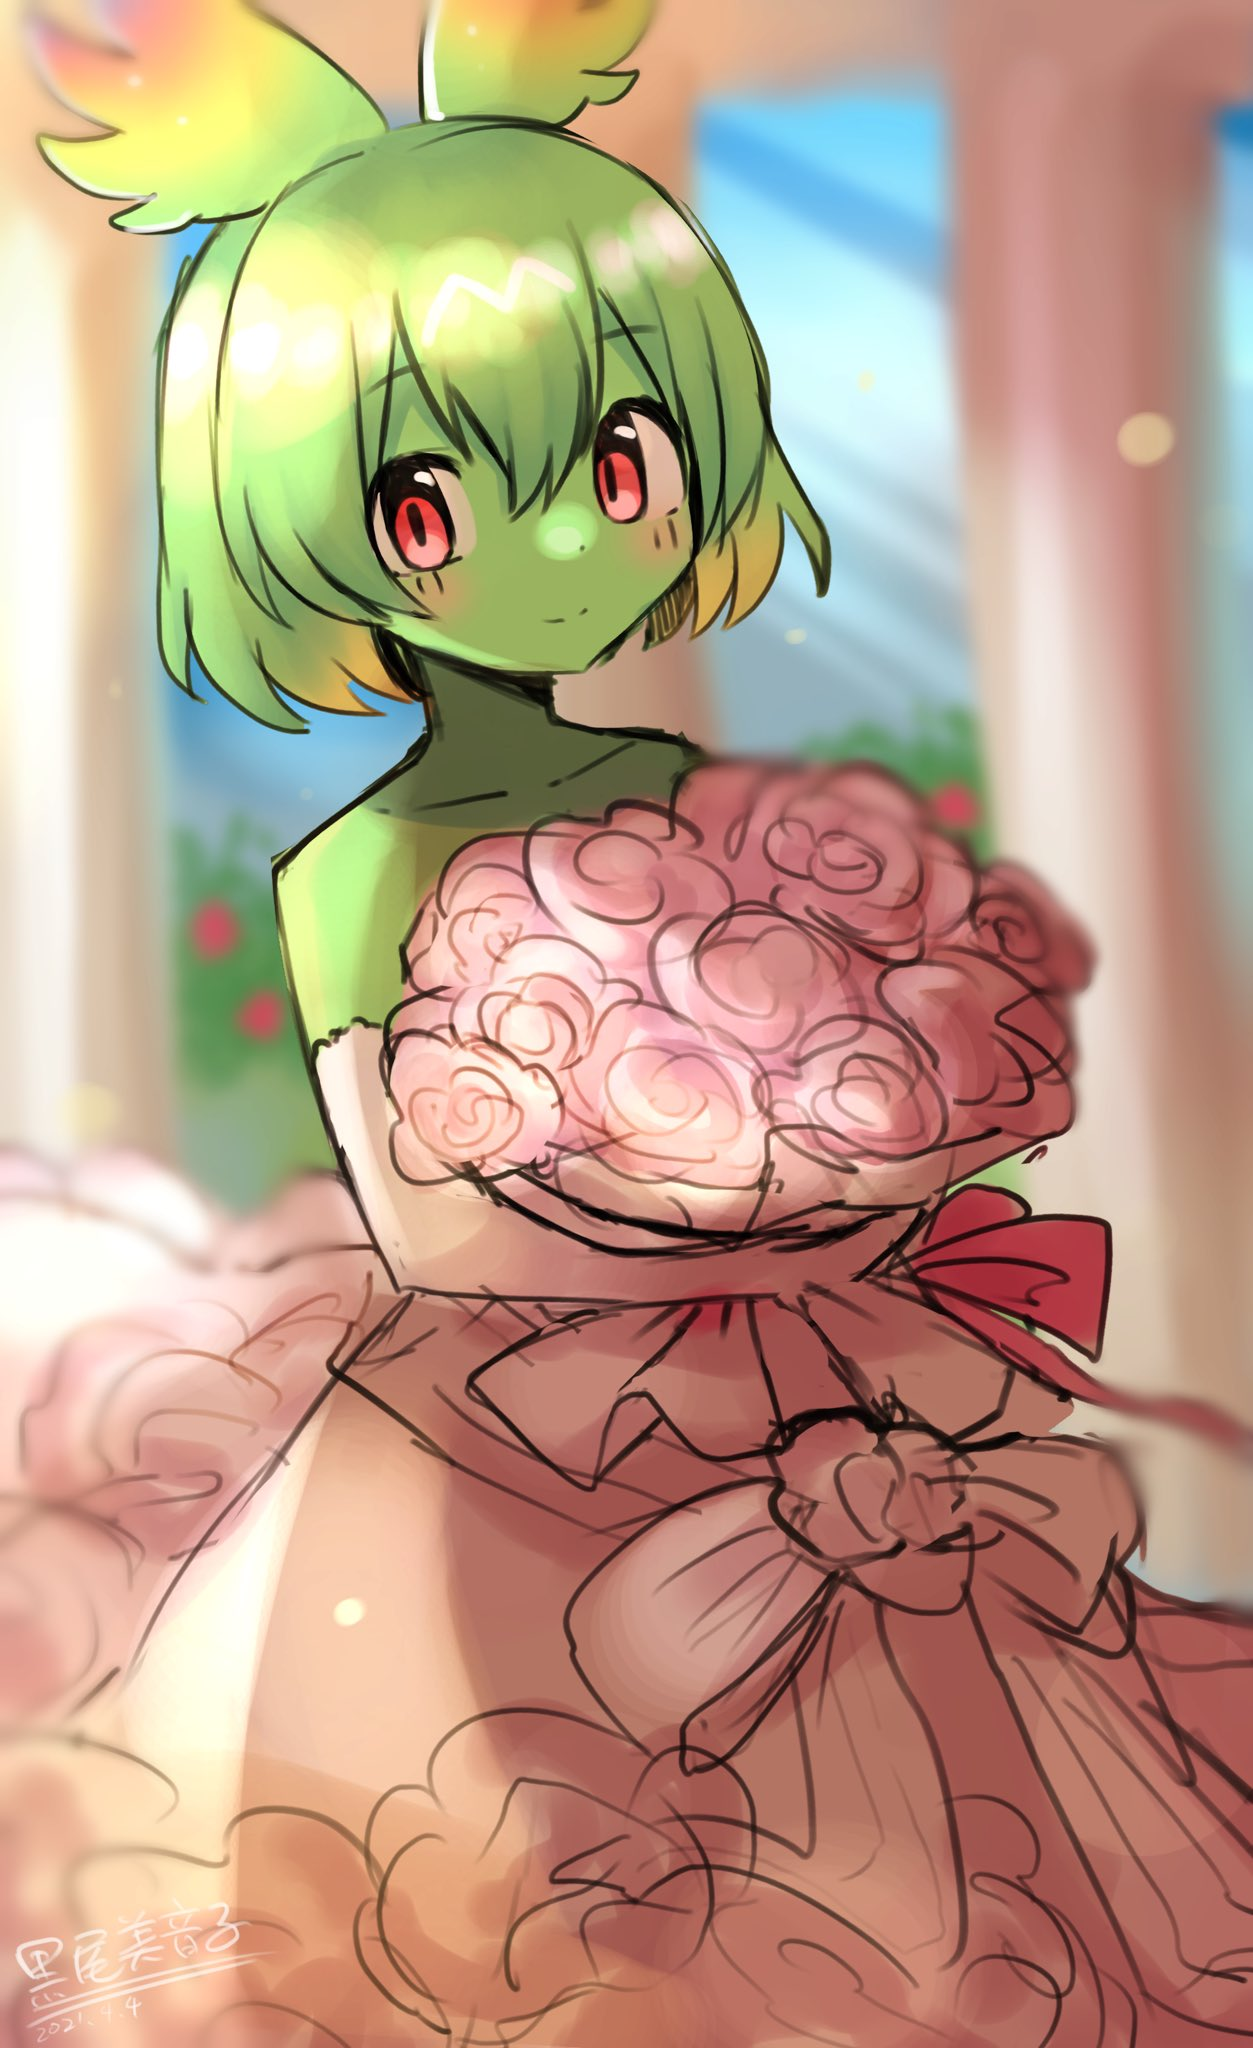 1girl alternate_costume animal_ears bouquet cellval colored_skin dress elbow_gloves eyebrows_visible_through_hair flower gloves green_hair green_skin highres kemono_friends looking_at_viewer mitorizu_02 multicolored_hair pink_dress pink_flower pink_gloves rainbow_hair red_eyes serval_ears serval_girl short_hair solo wedding_dress